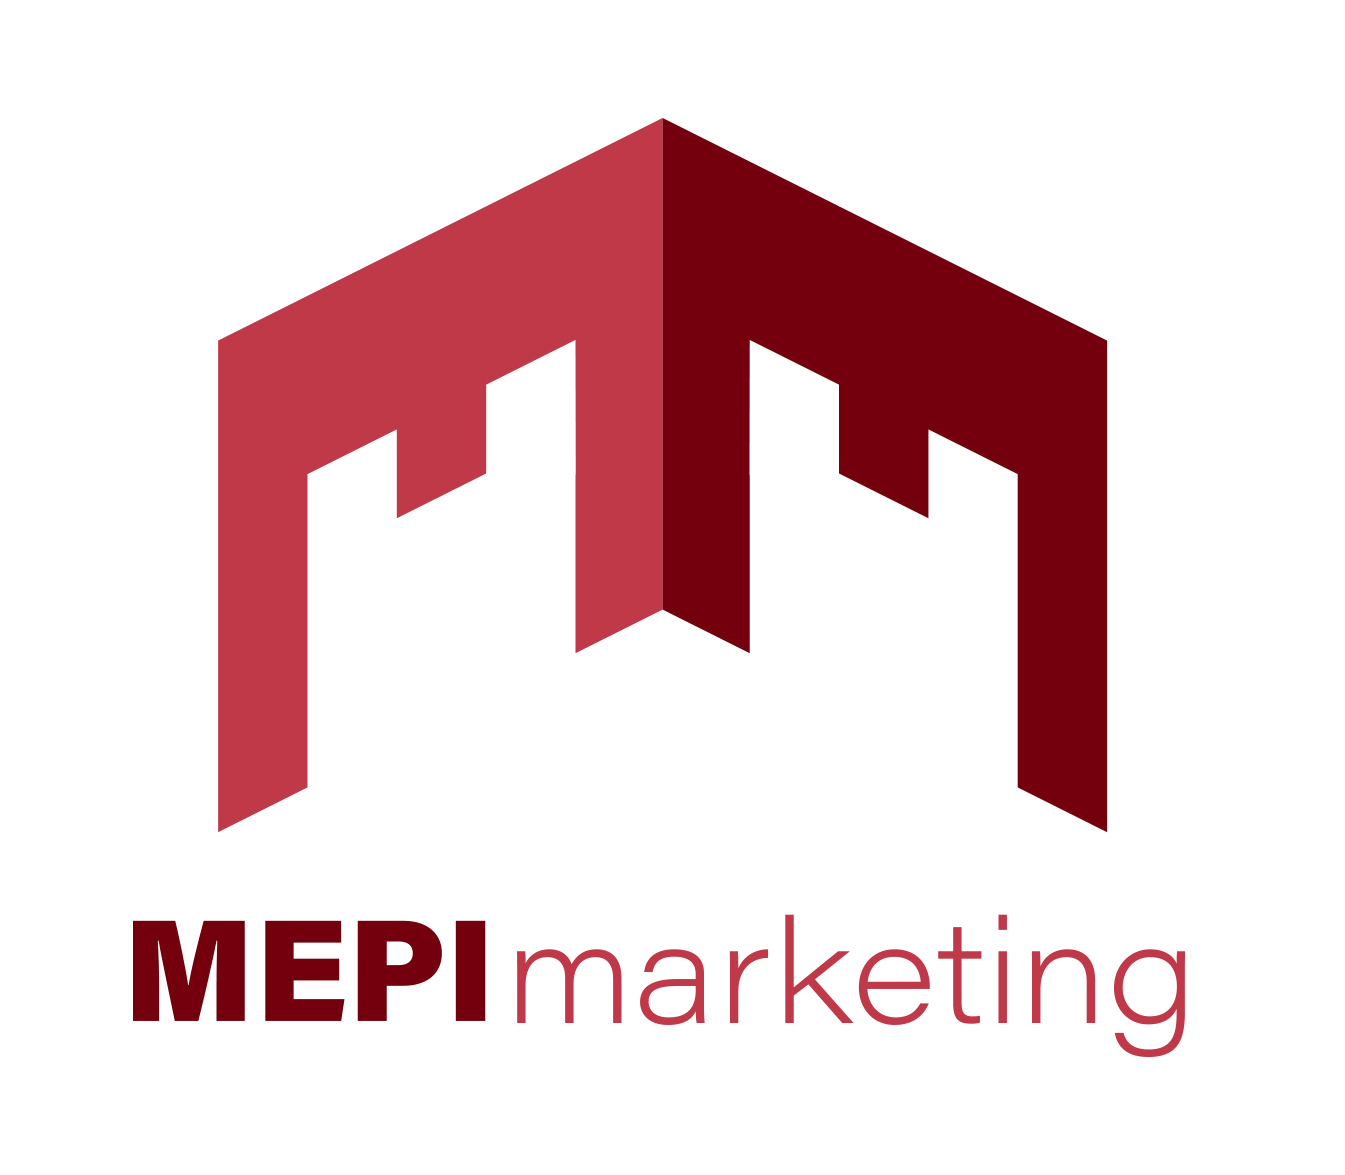 MepiMarketing